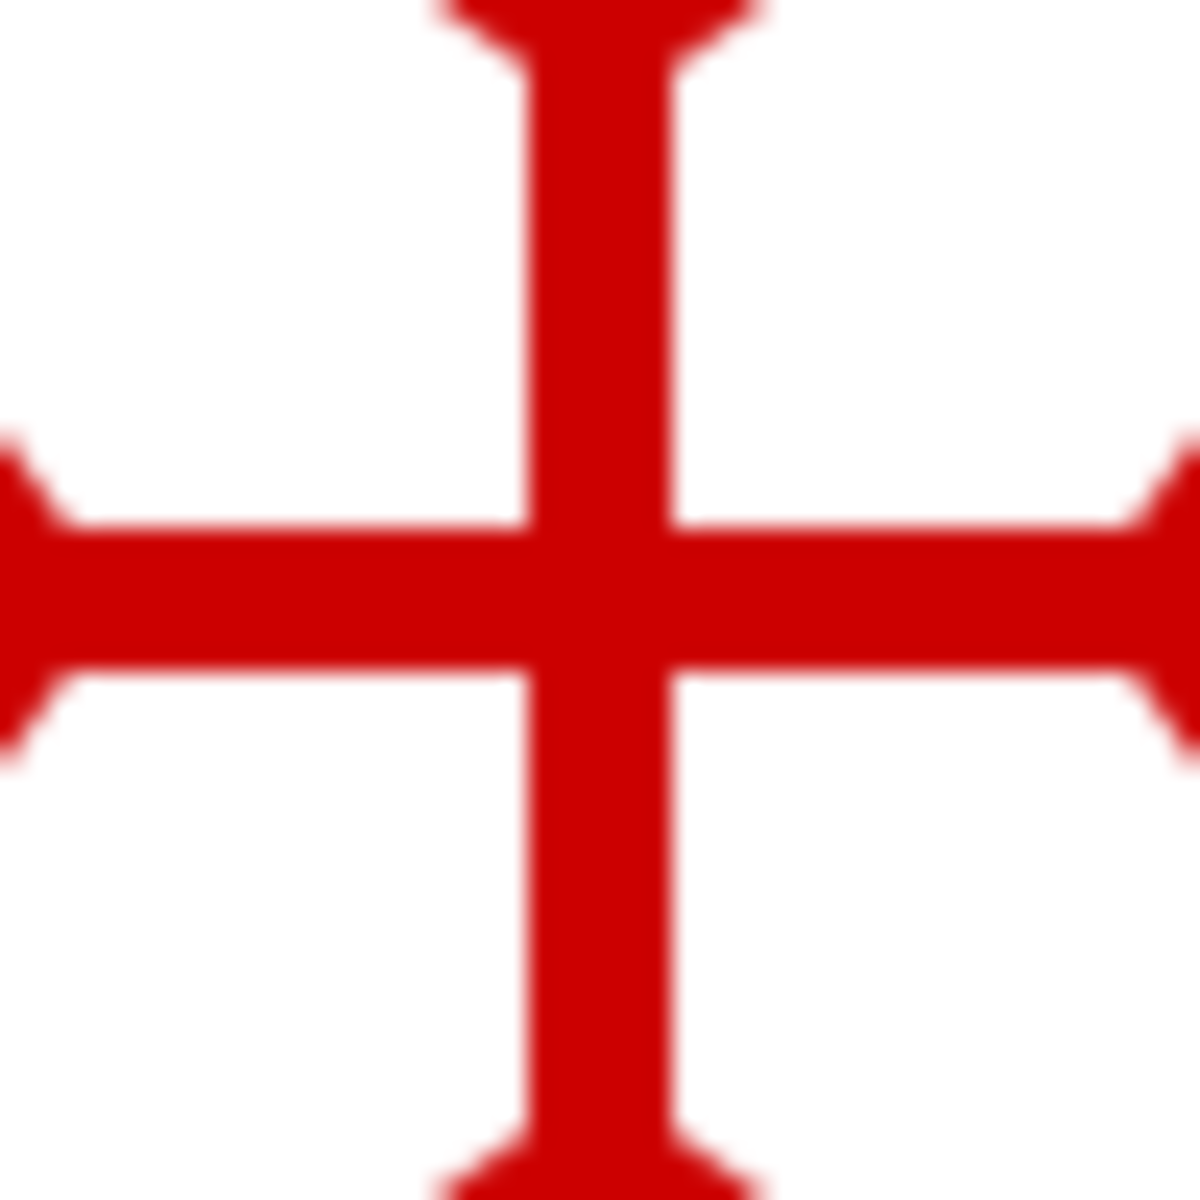 The famous emblem of the Knights Templar